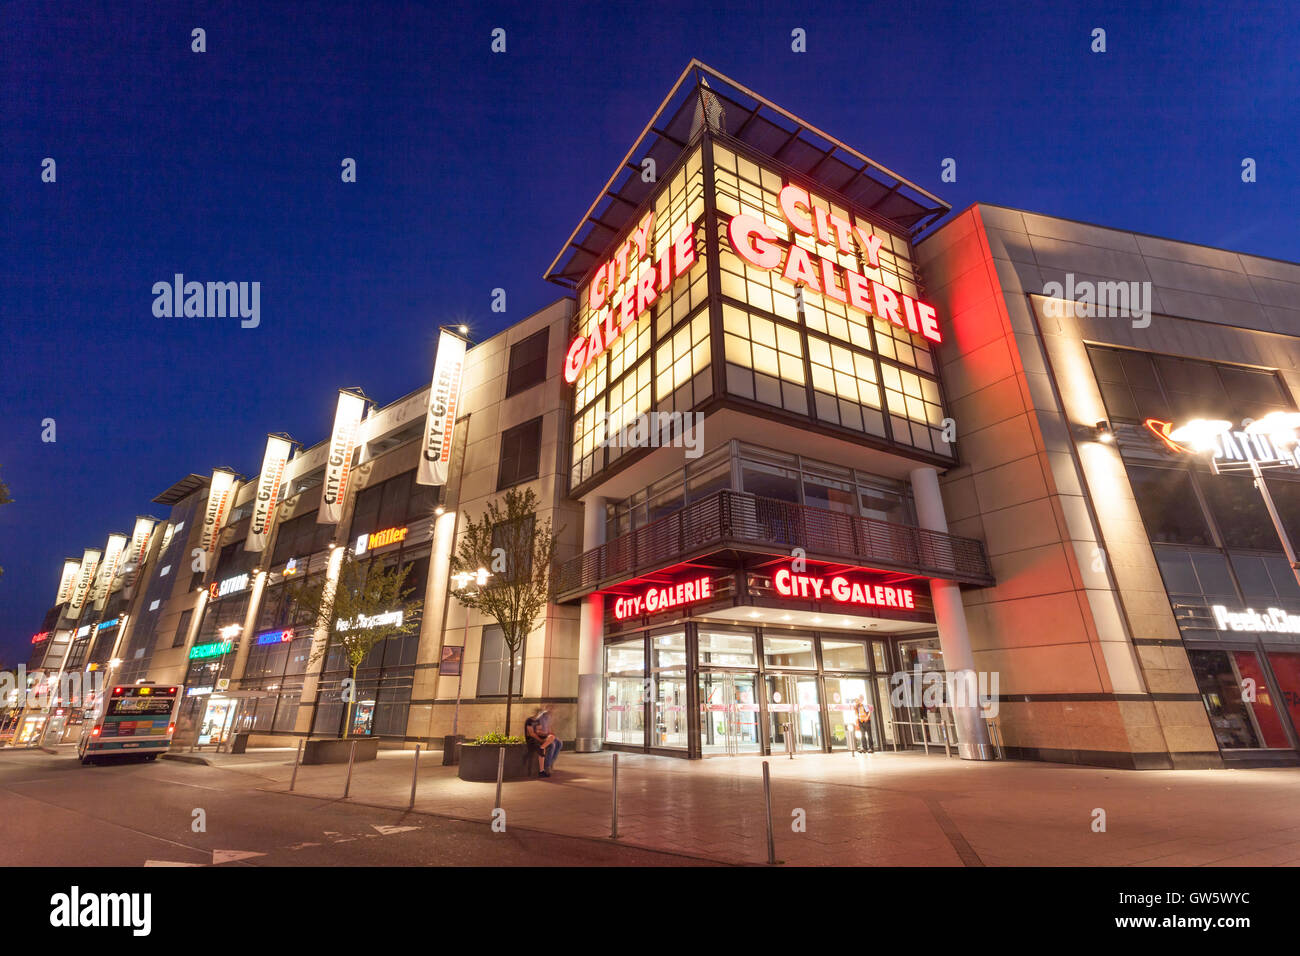 City Galerie shopping mall in Siegen, Germany Stock Photo - Alamy